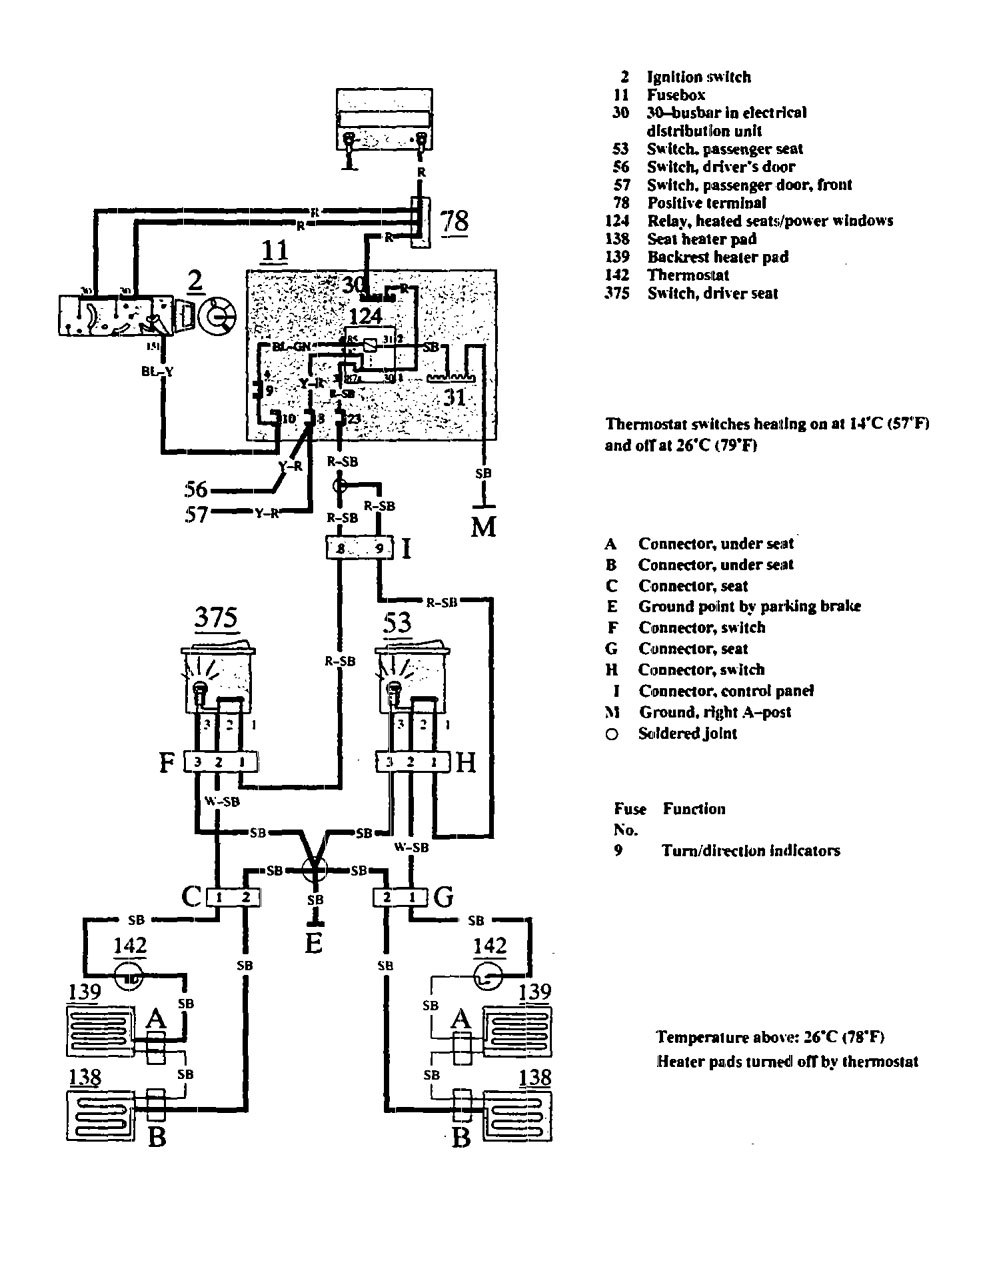 Wiring diagram for saab heated seats